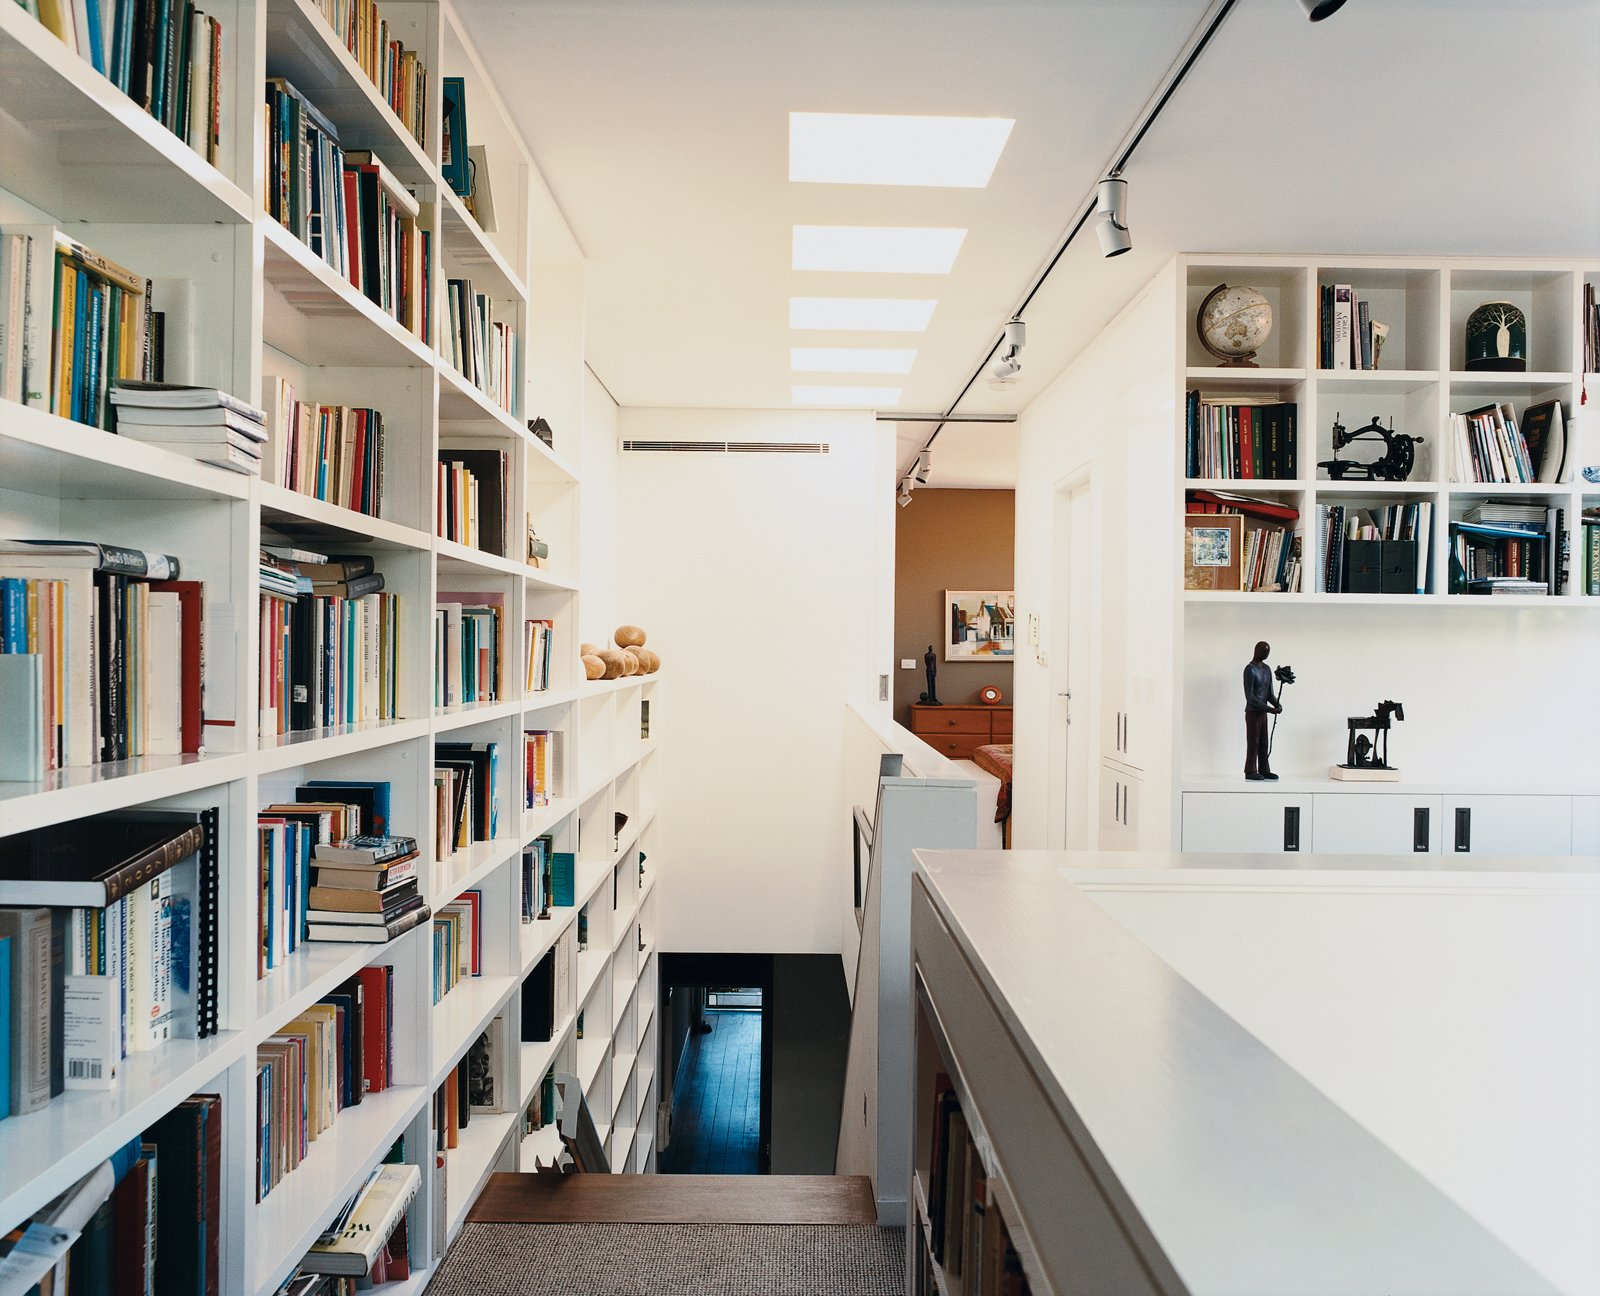 Storage Room and Shelves Storage Type A wall of books travels the height of the stairs leading to Ann Wansbrough's office, which rests comfortably on the top floor despite her limited mobility.  13+ Clever Bookcase Solutions by Erika Heet from The First Wave